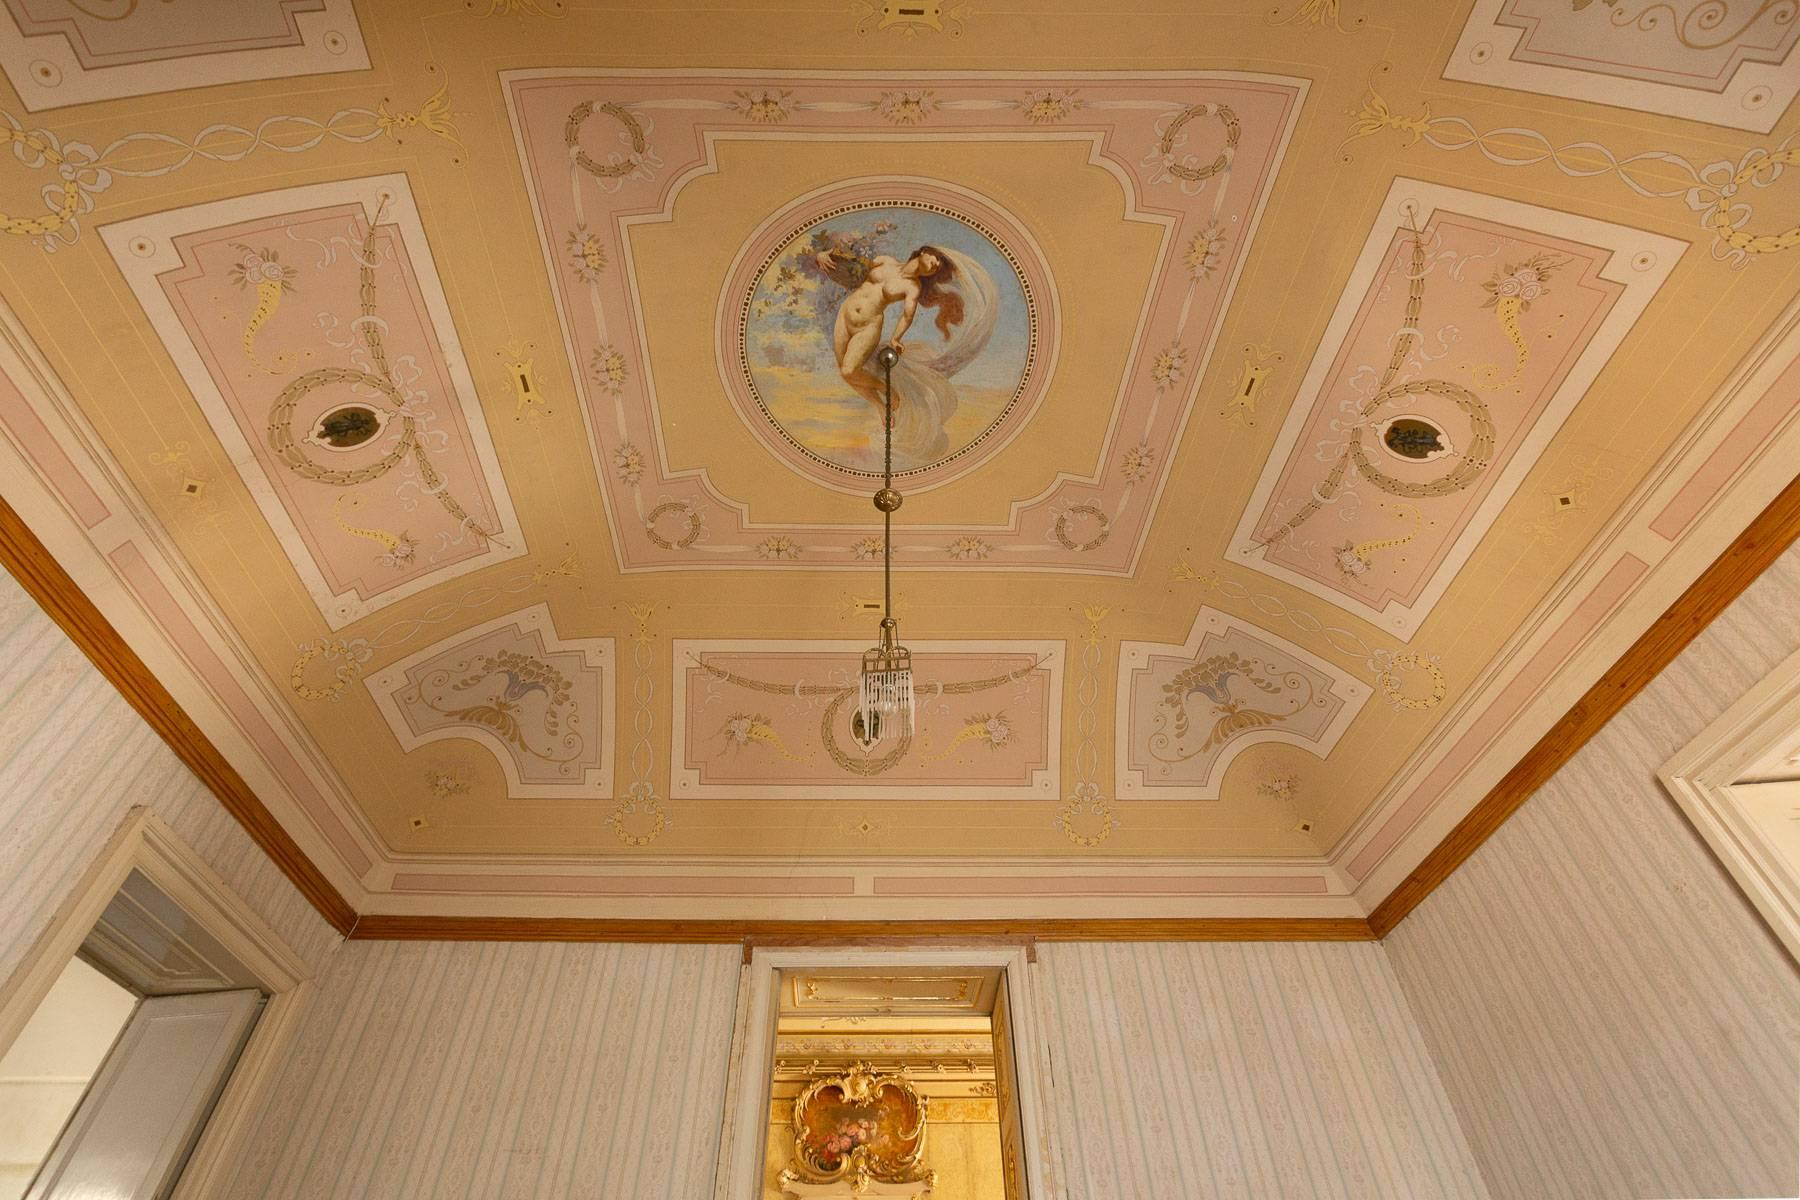 Noble Palace in Palazzolo Acreide - 15